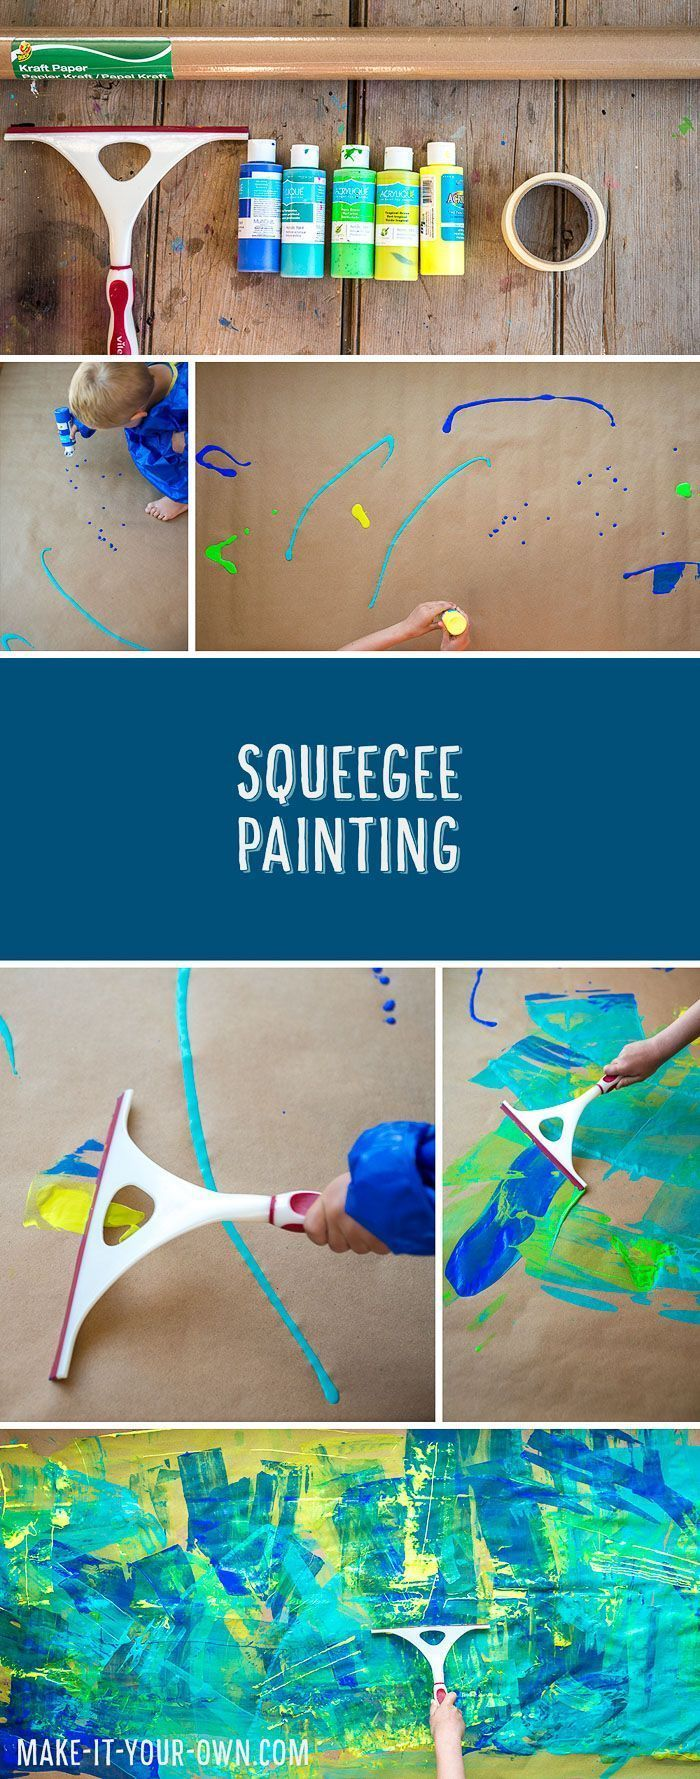 Squeegee Painting with http://make-it-your-own.com (Creative activities for kids). This process art is an easy set-up and the paper can then be used for collage, packaging or personalized gift wrap!